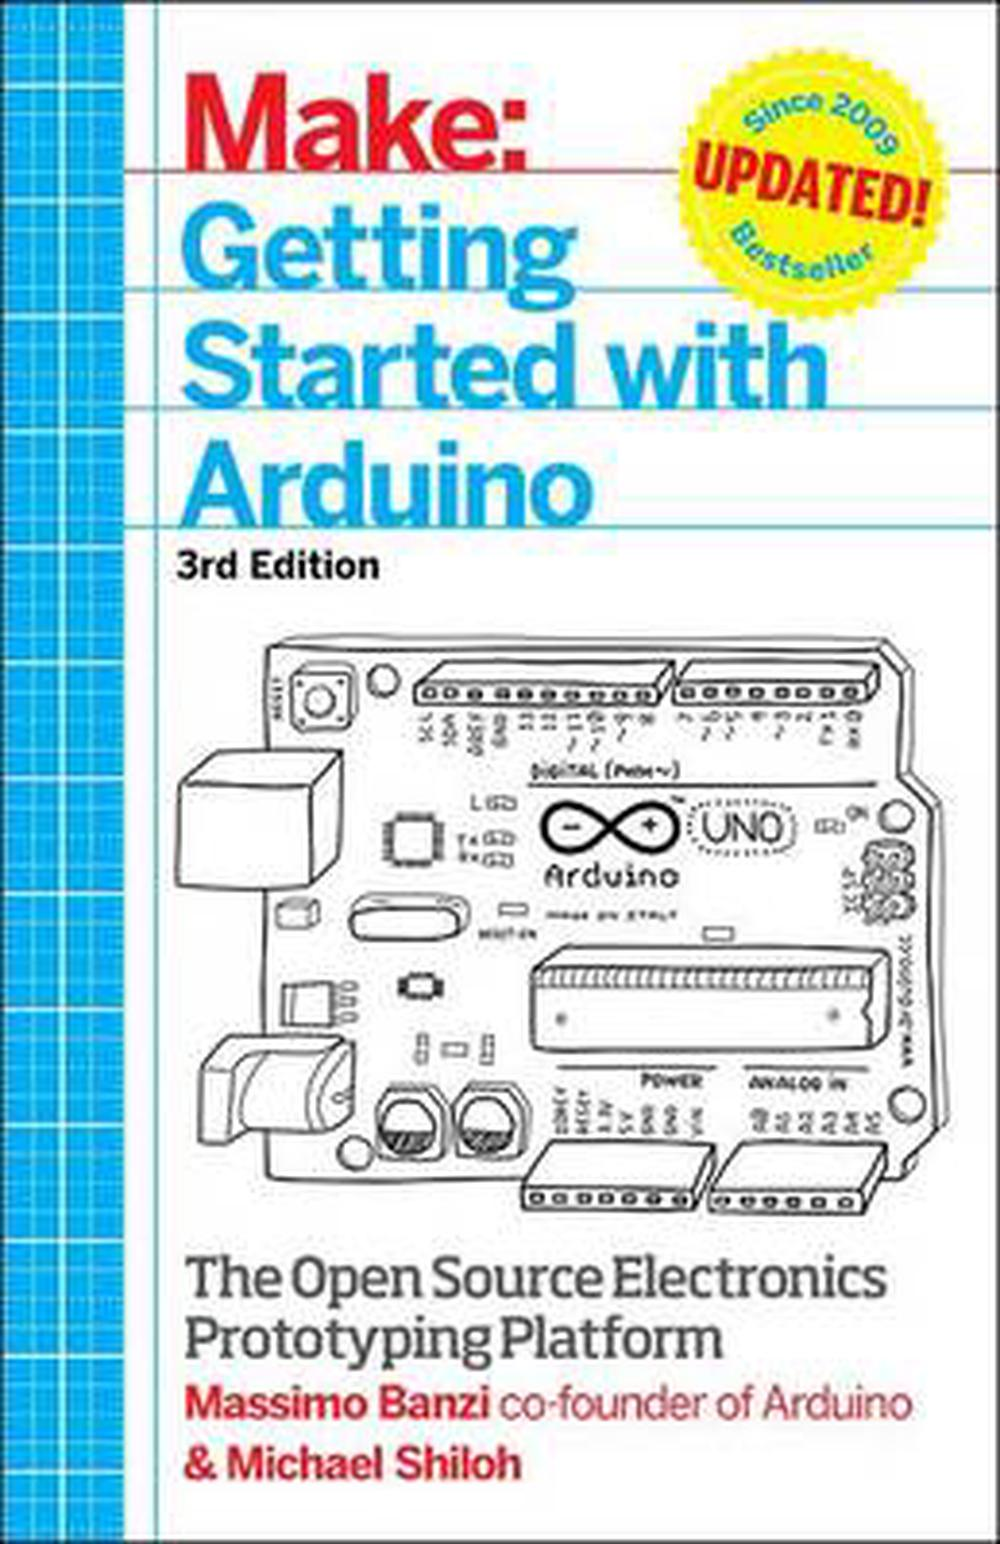 Make - Getting Started With Arduino